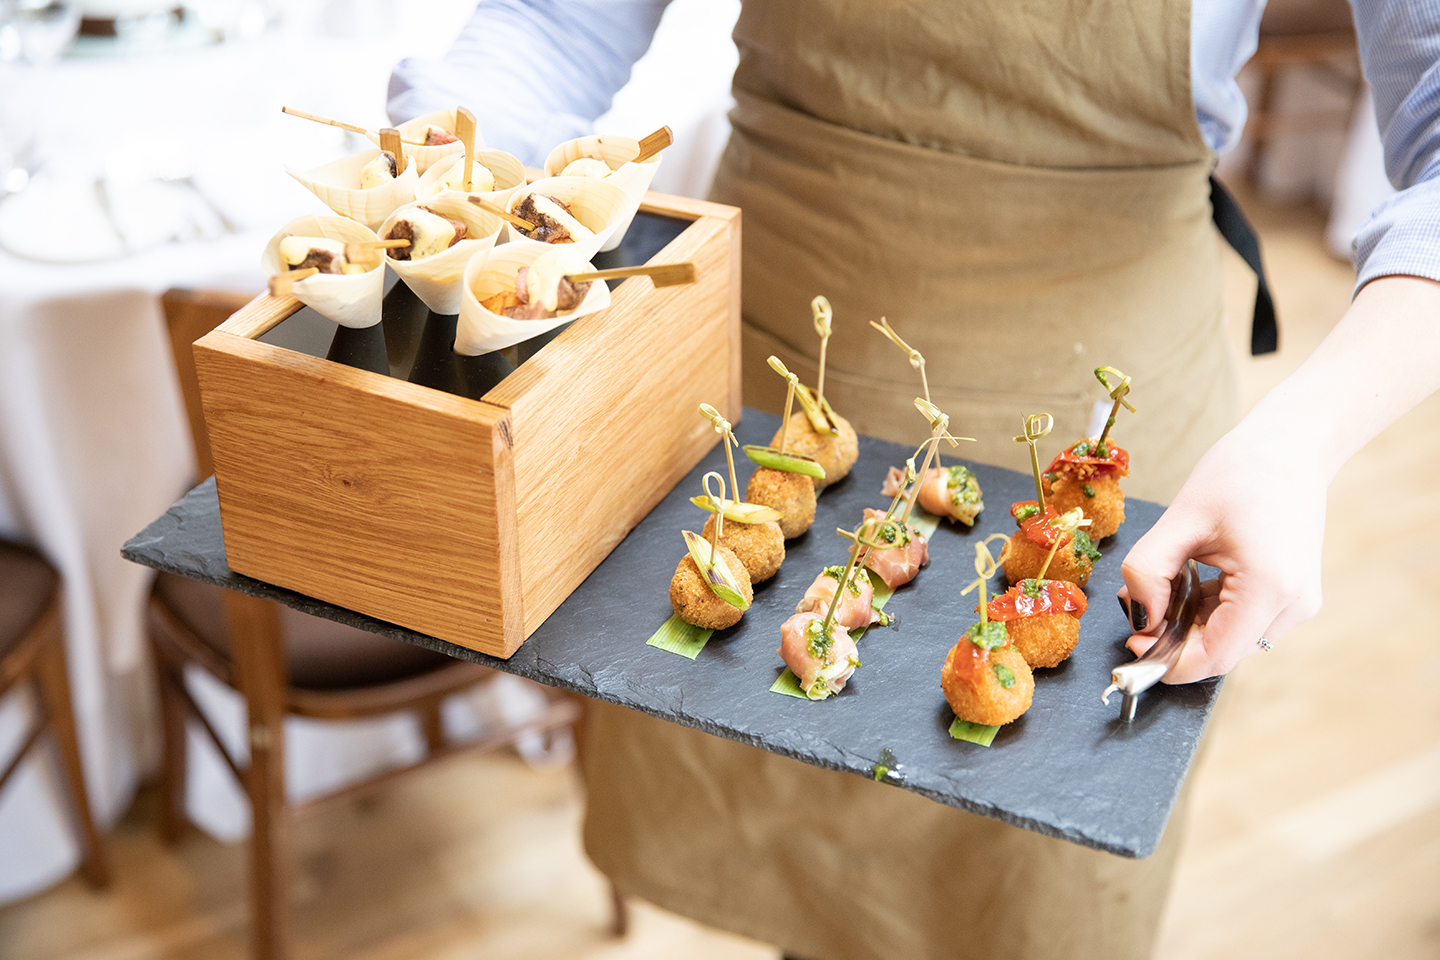 Wedding canapes were served to guests during a spring wedding reception at Bassmead Manor Barns